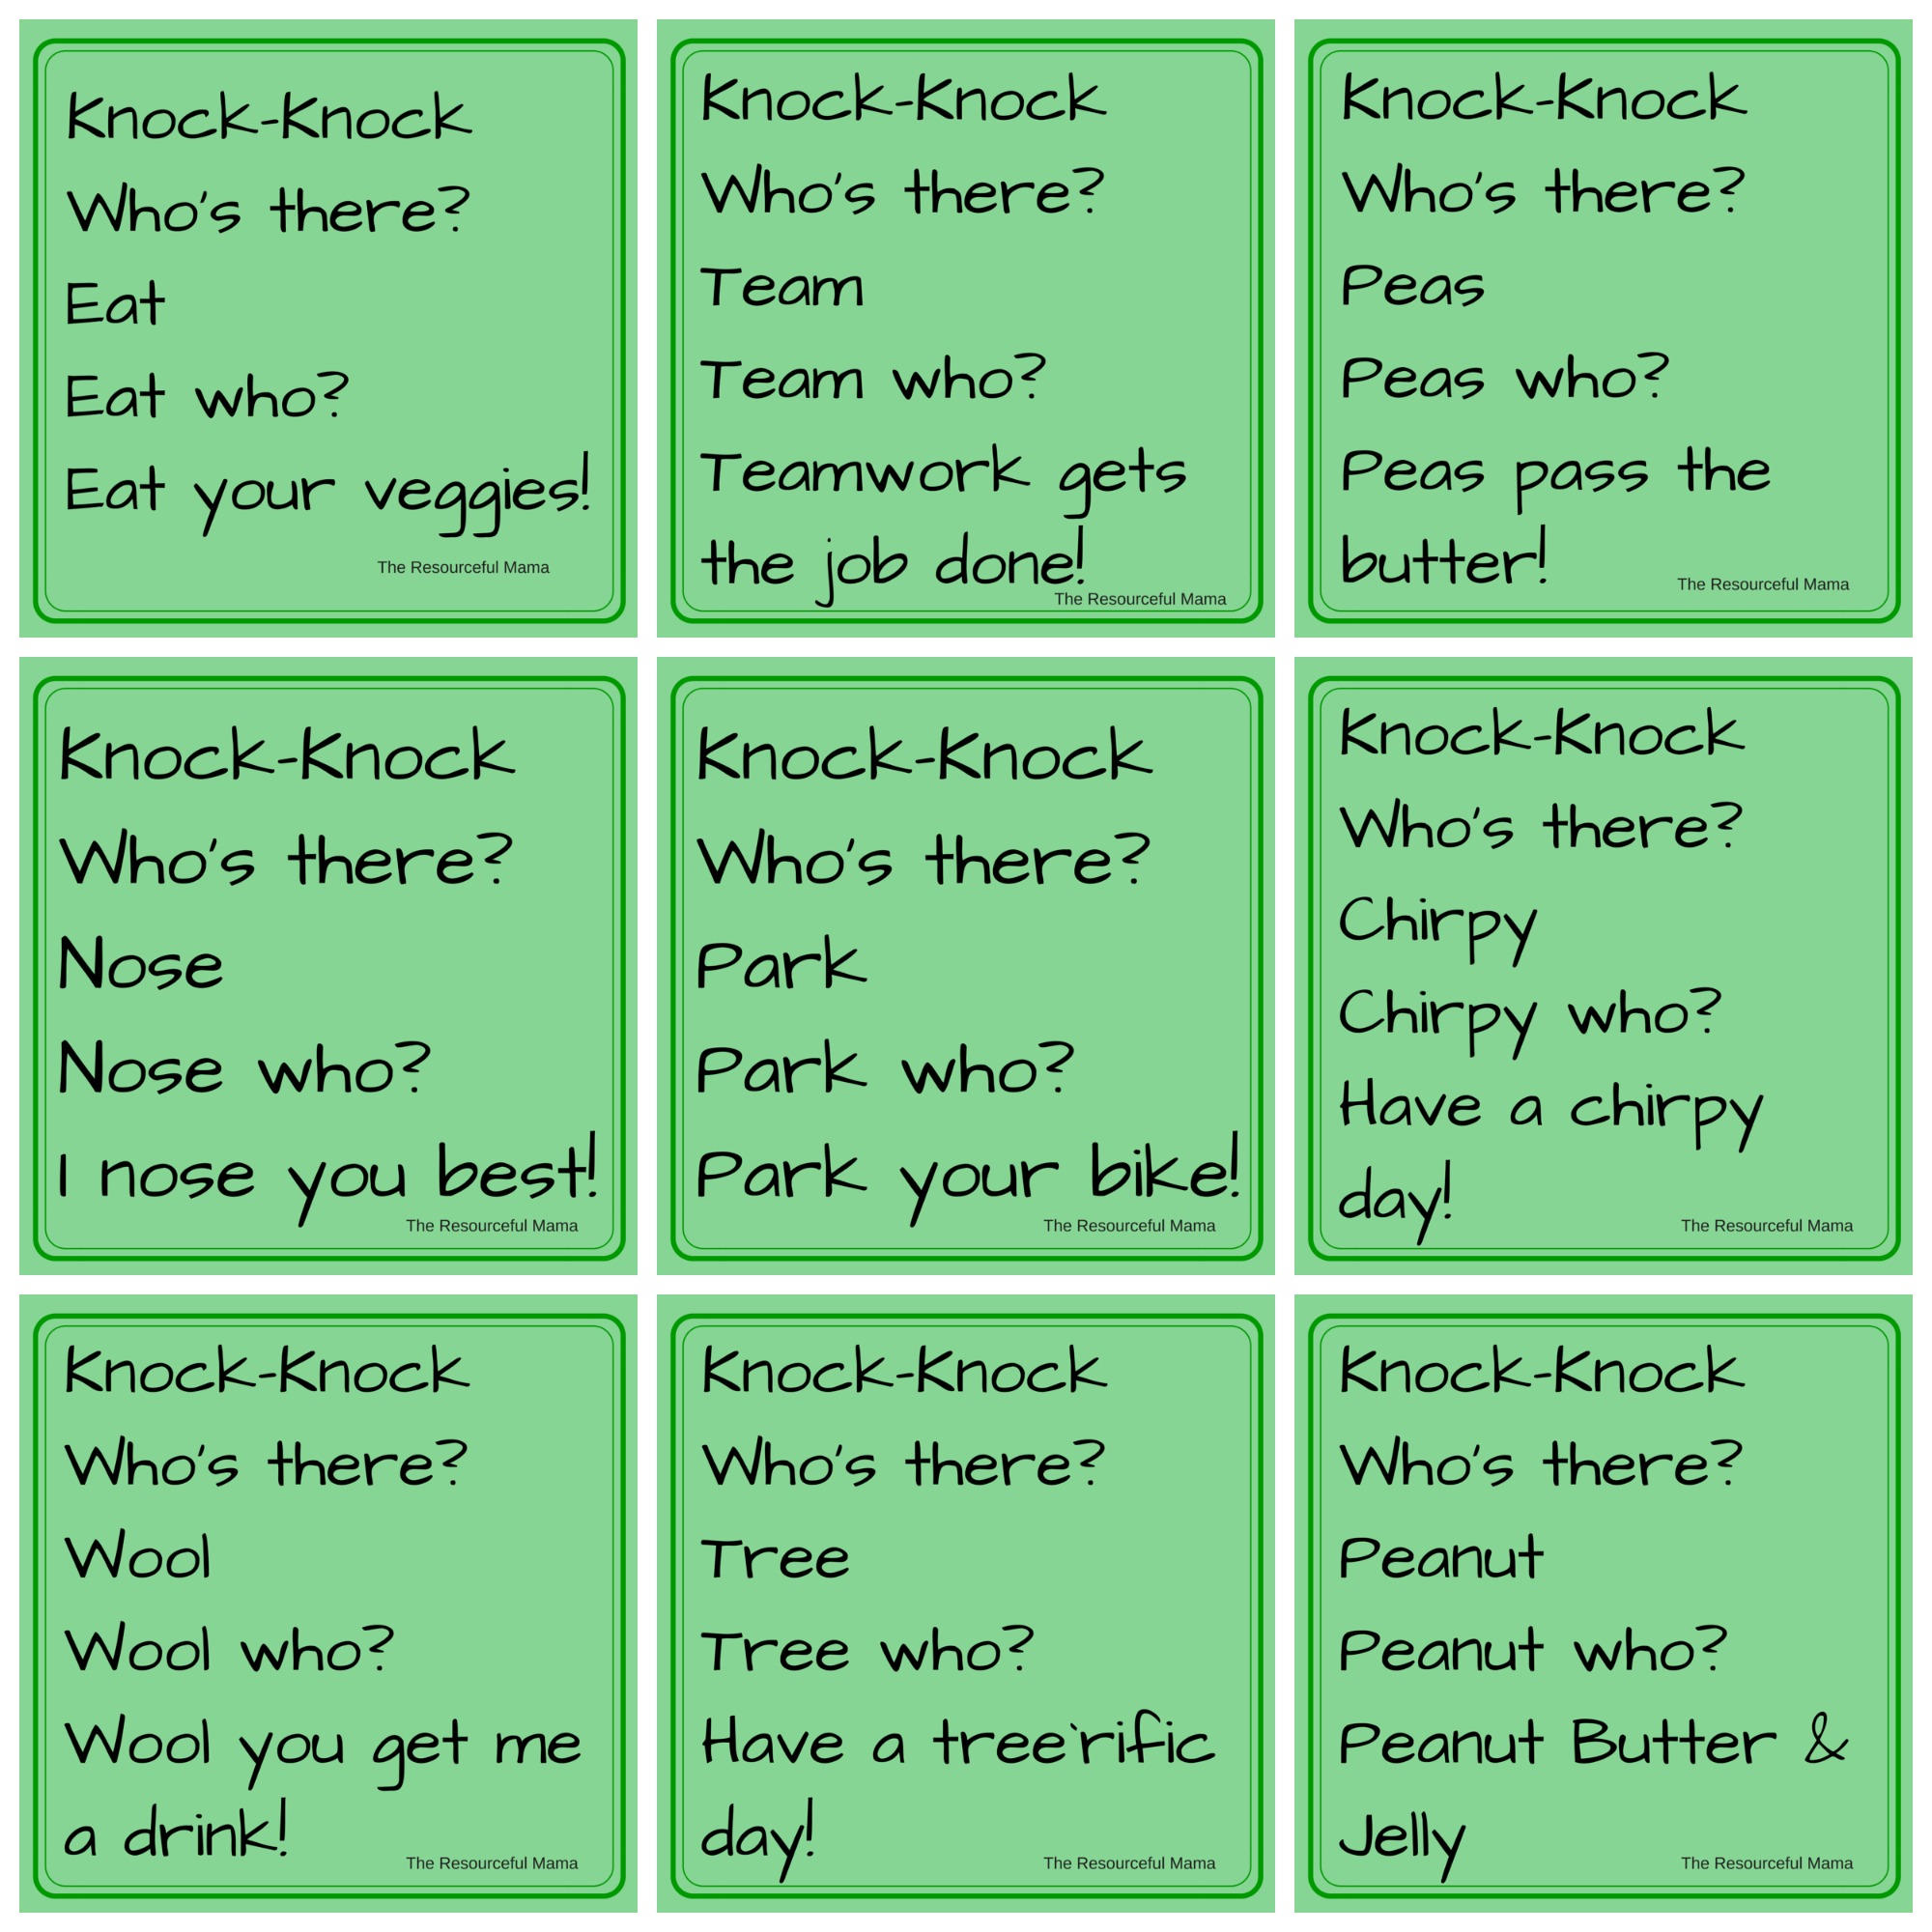 April Fool S Day Knock Knock Jokes For Kids The